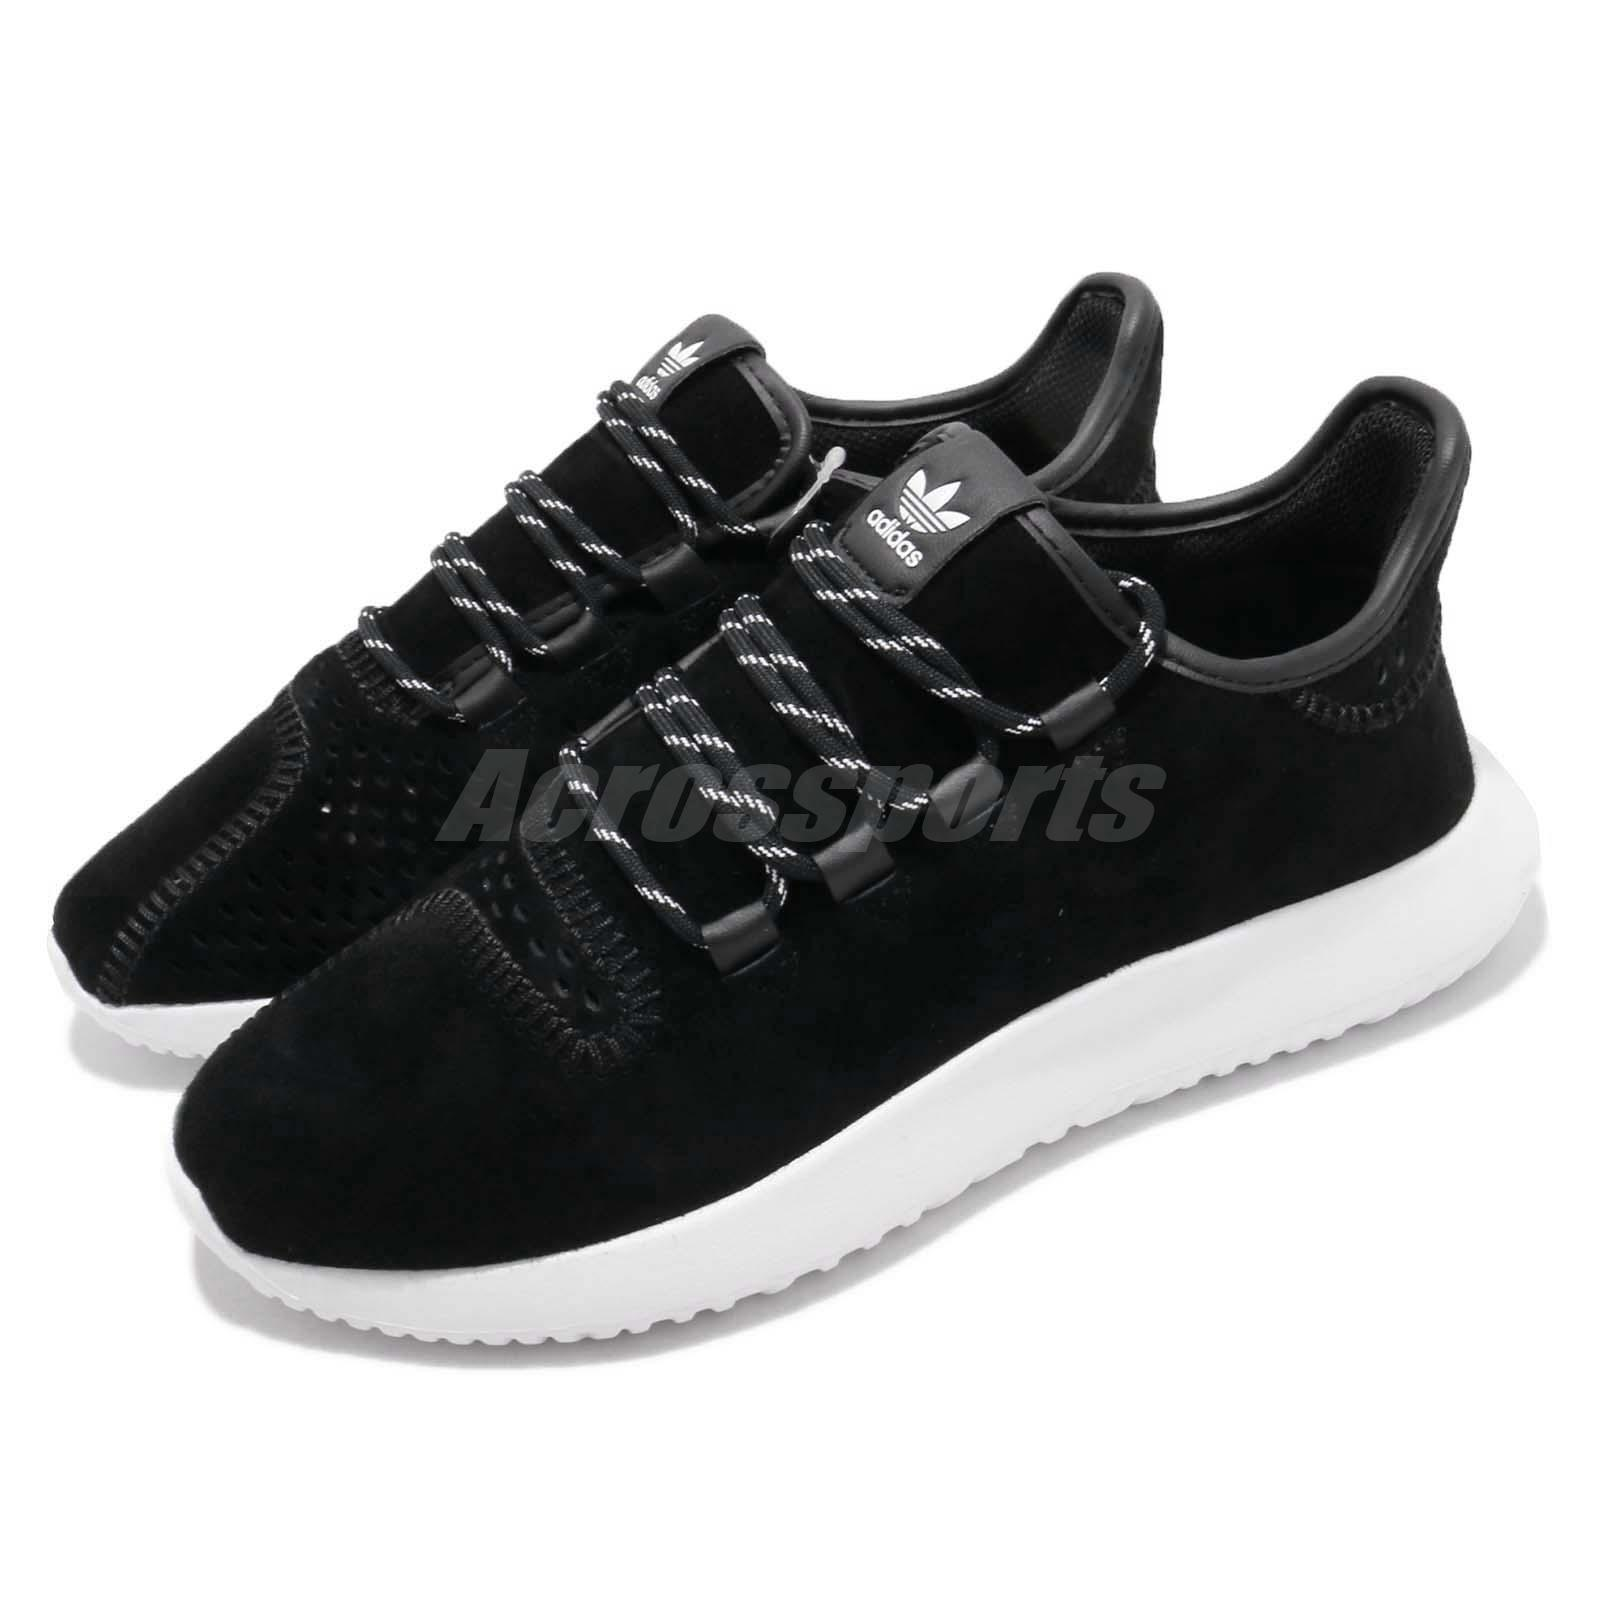 reputable site 42c96 b2684 Details about adidas Originals Tubular Shadow Black White Men Casual Shoes  Sneakers CQ0933